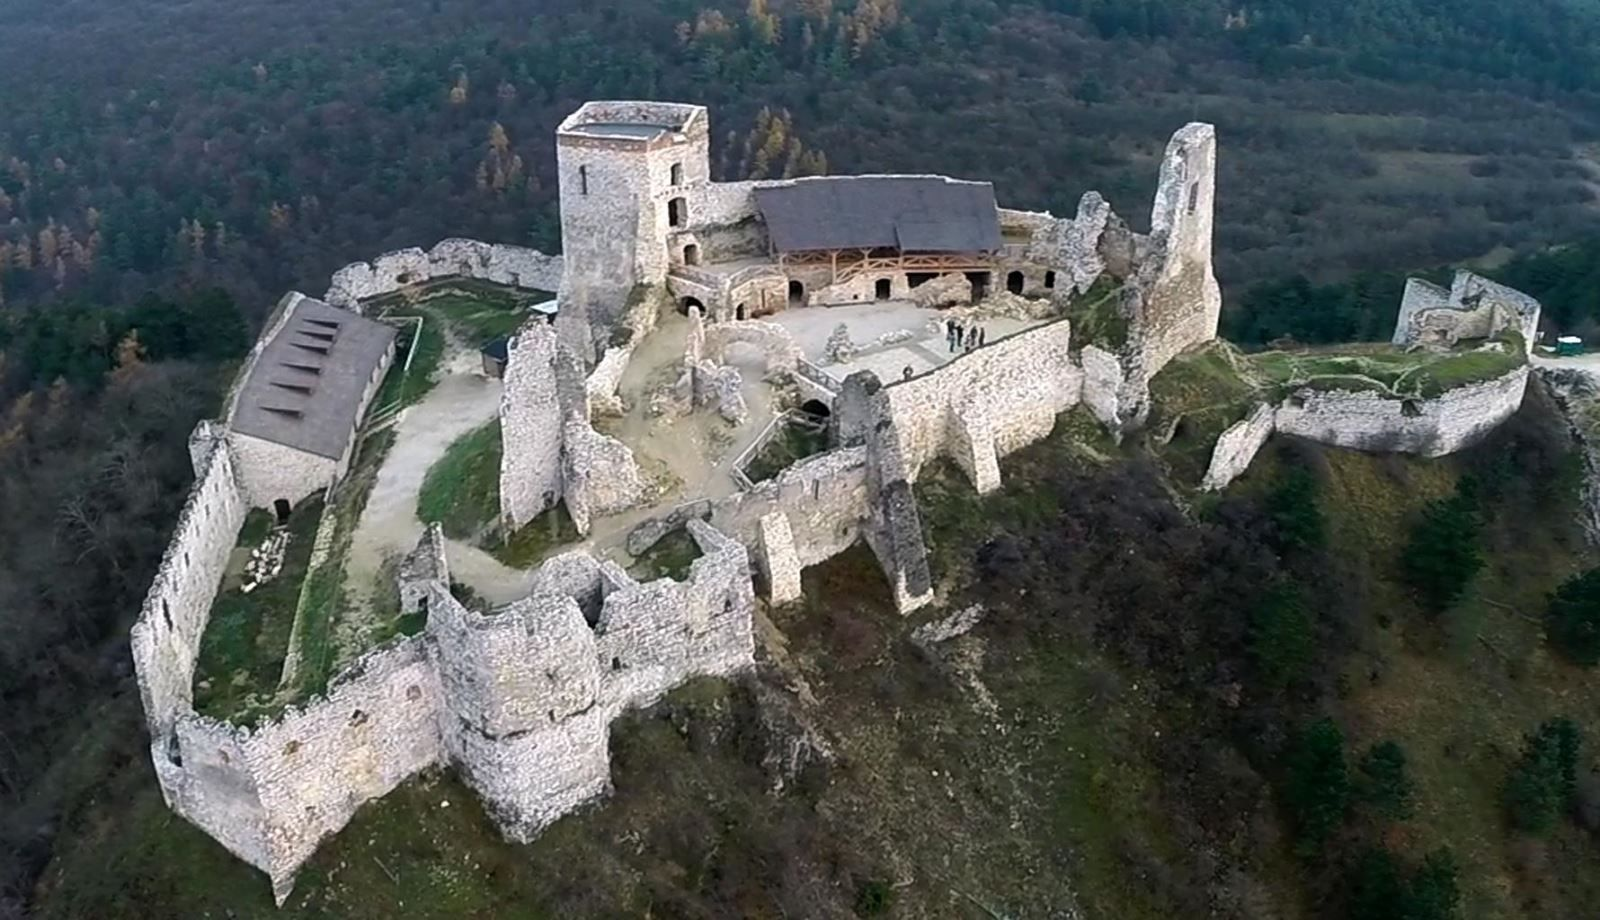 An Aerial View Of The Cachtice Castle European Castles Castle Real Castles